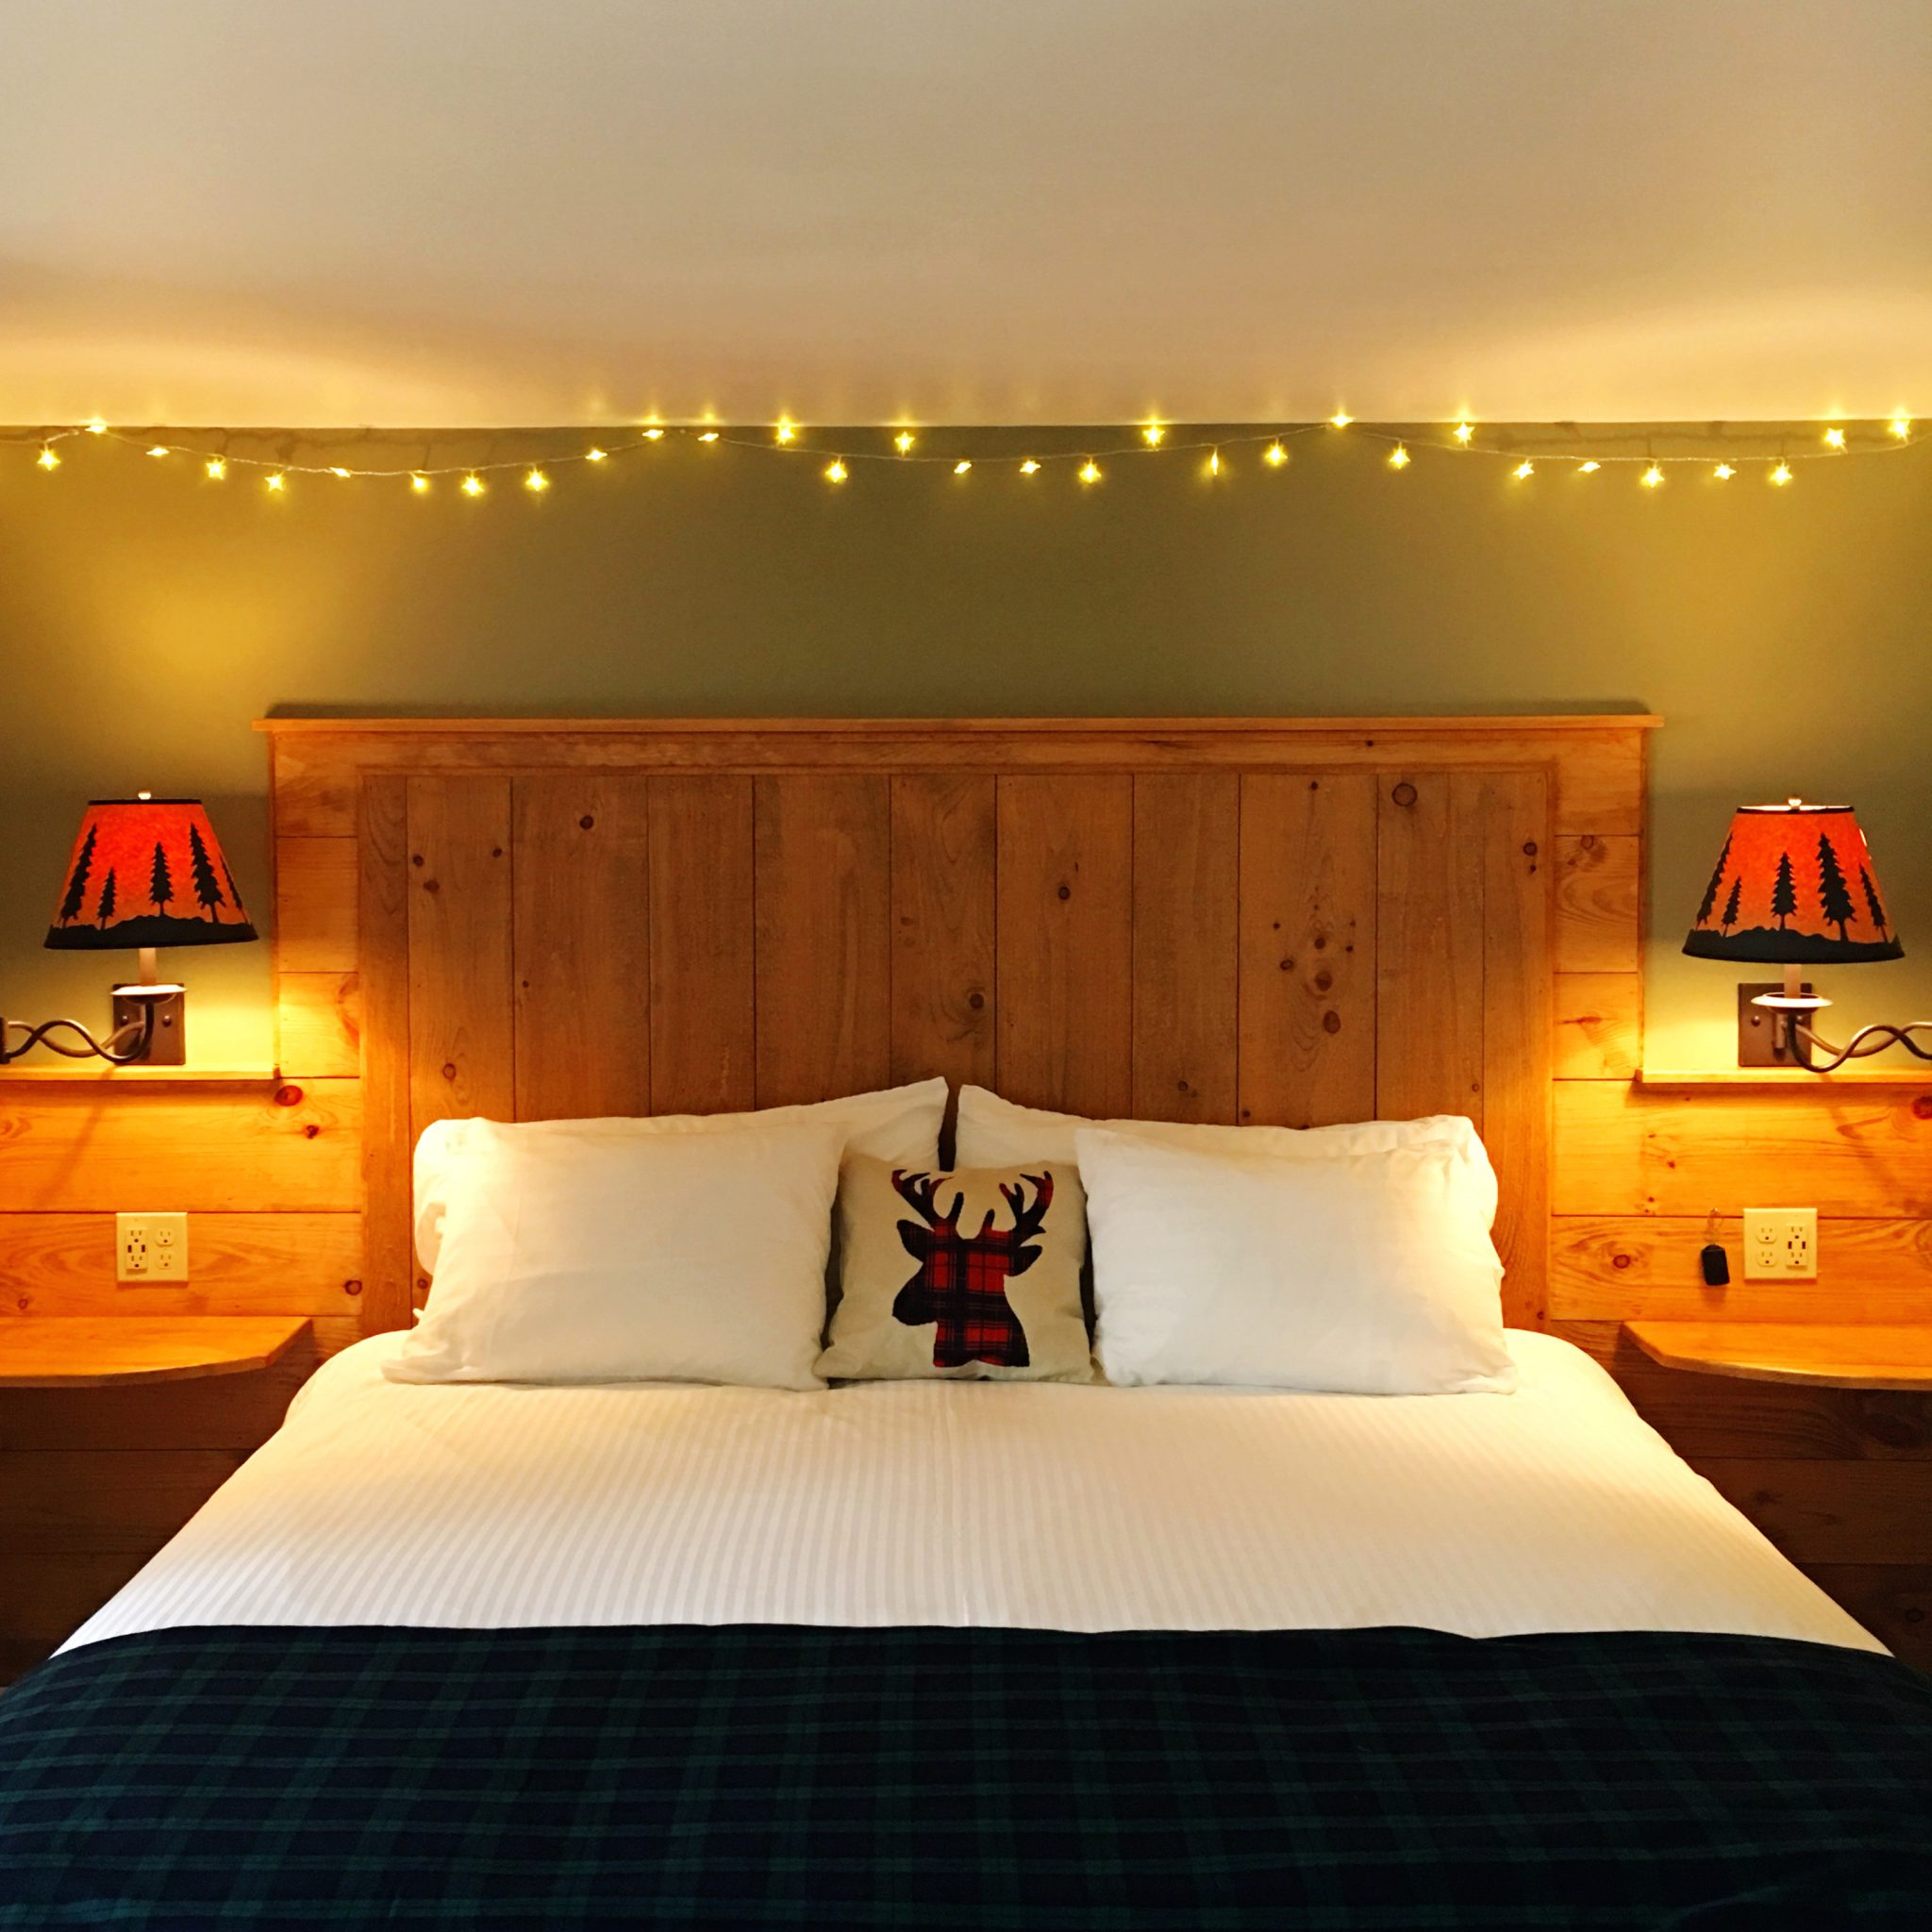 Wooden bed head with deer pillow and twinkling lights